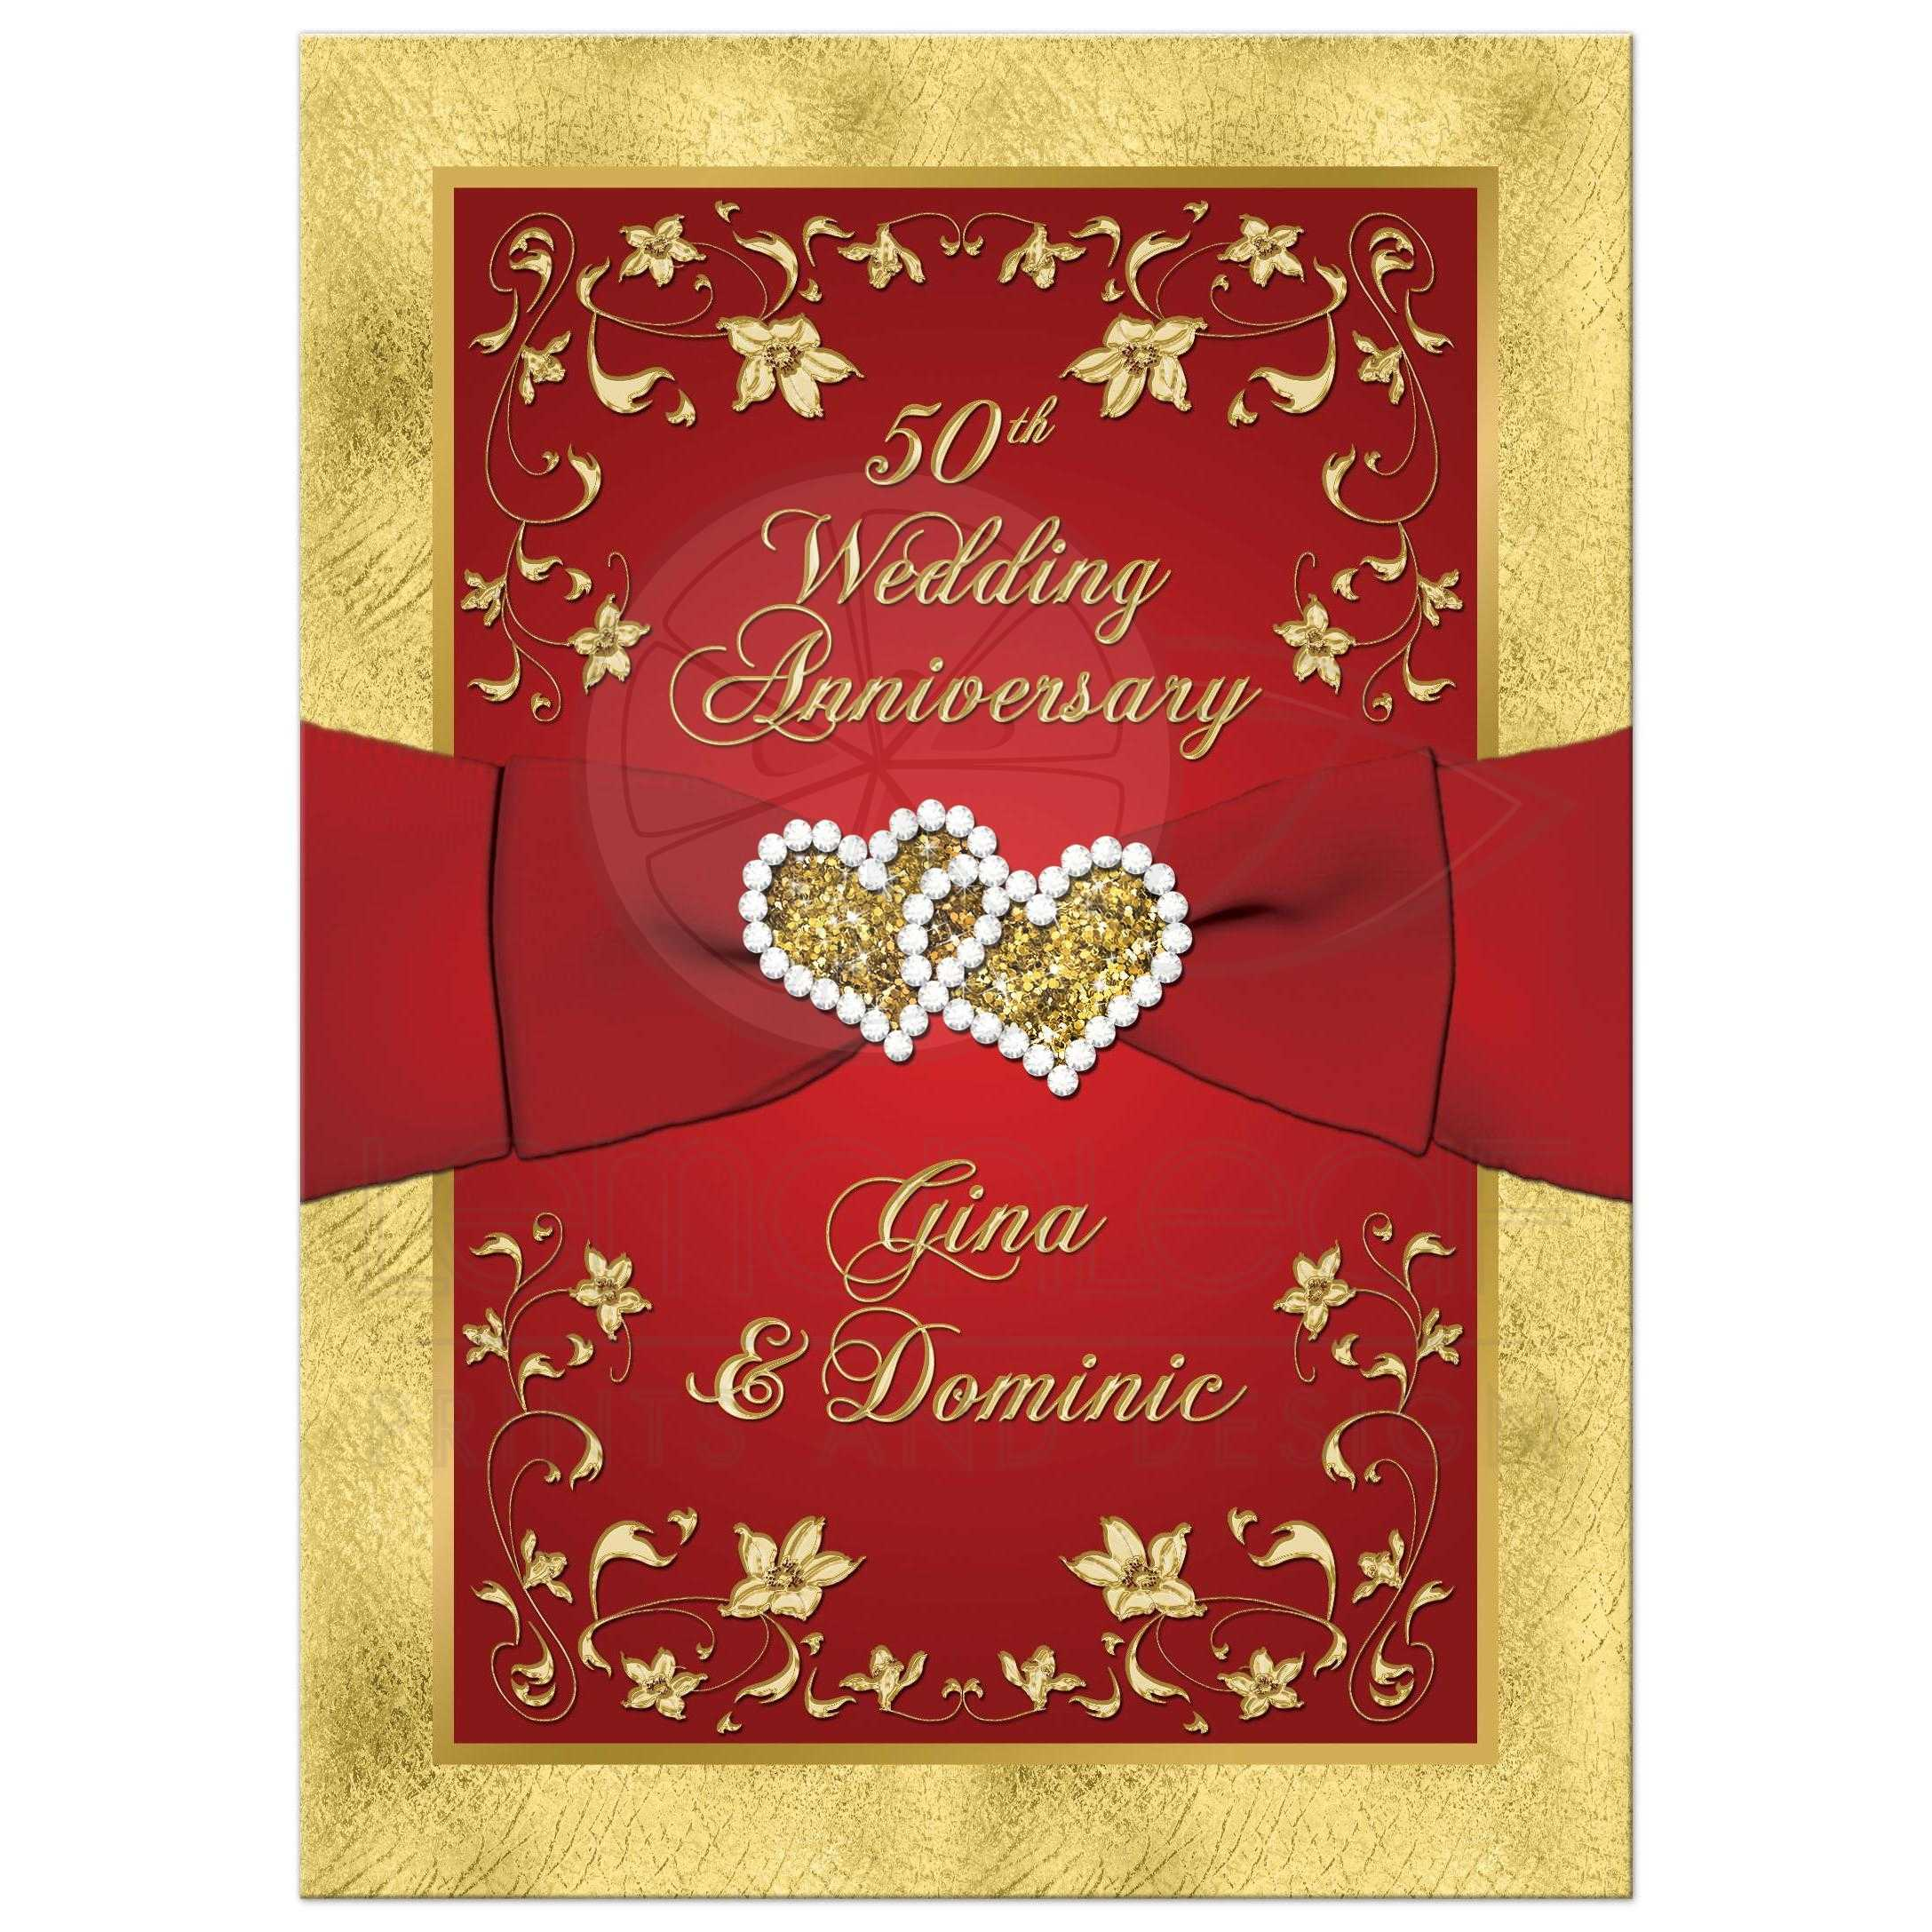 50th Wedding Anniversary Invite Red Gold Floral